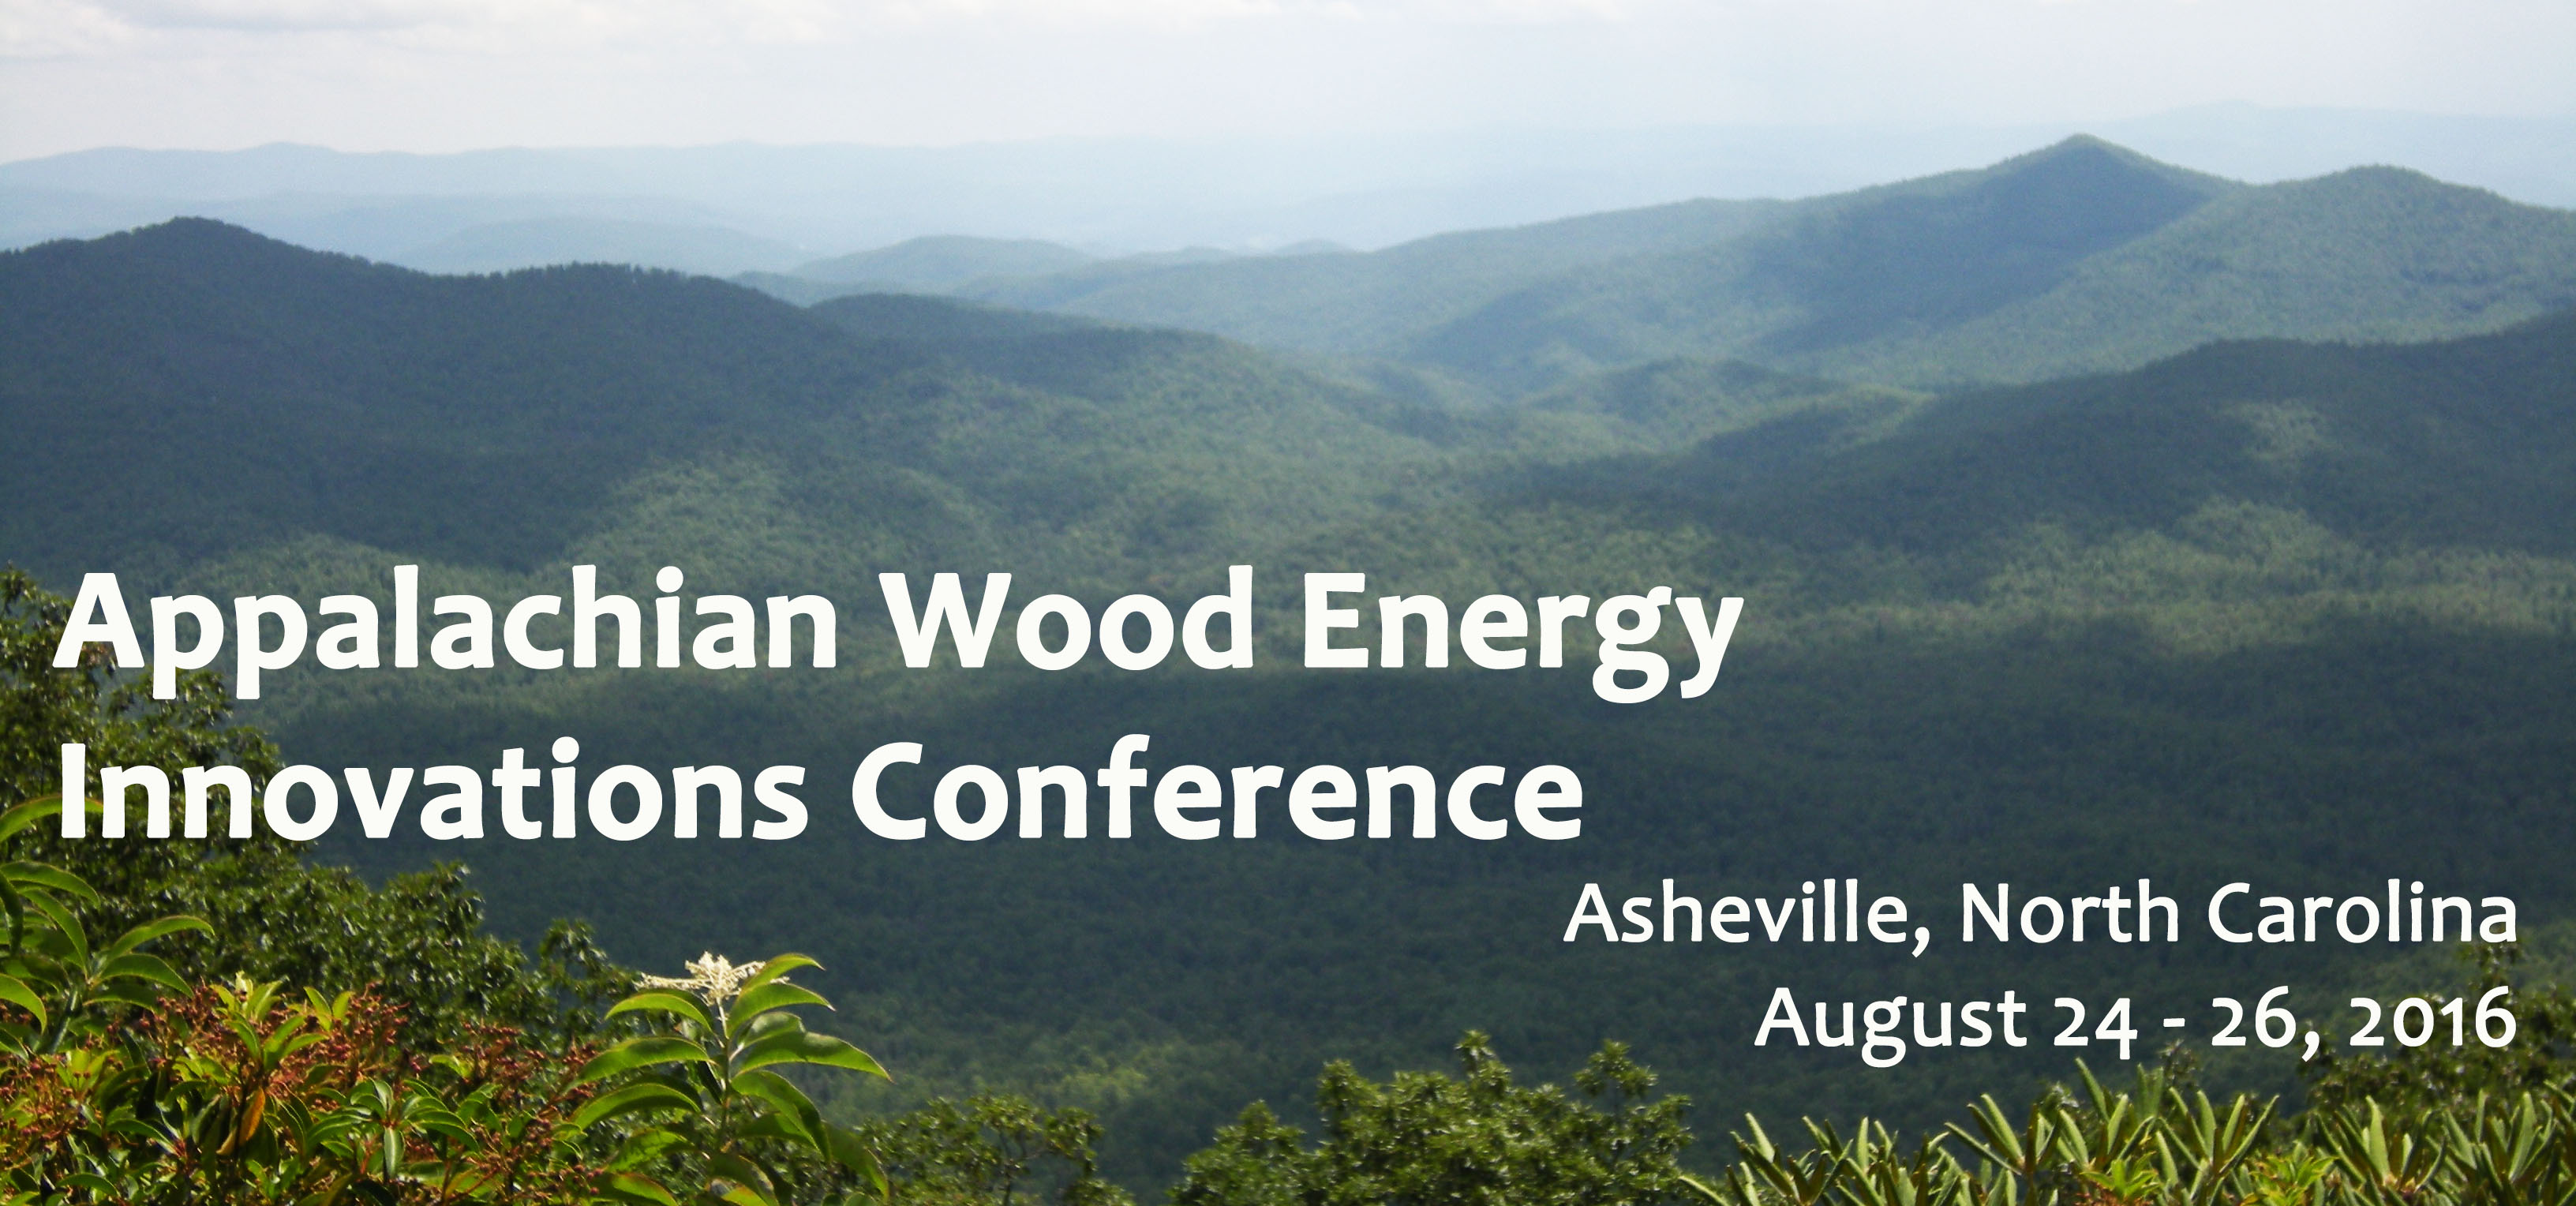 Appalachian Wood Energy Innovations Conference